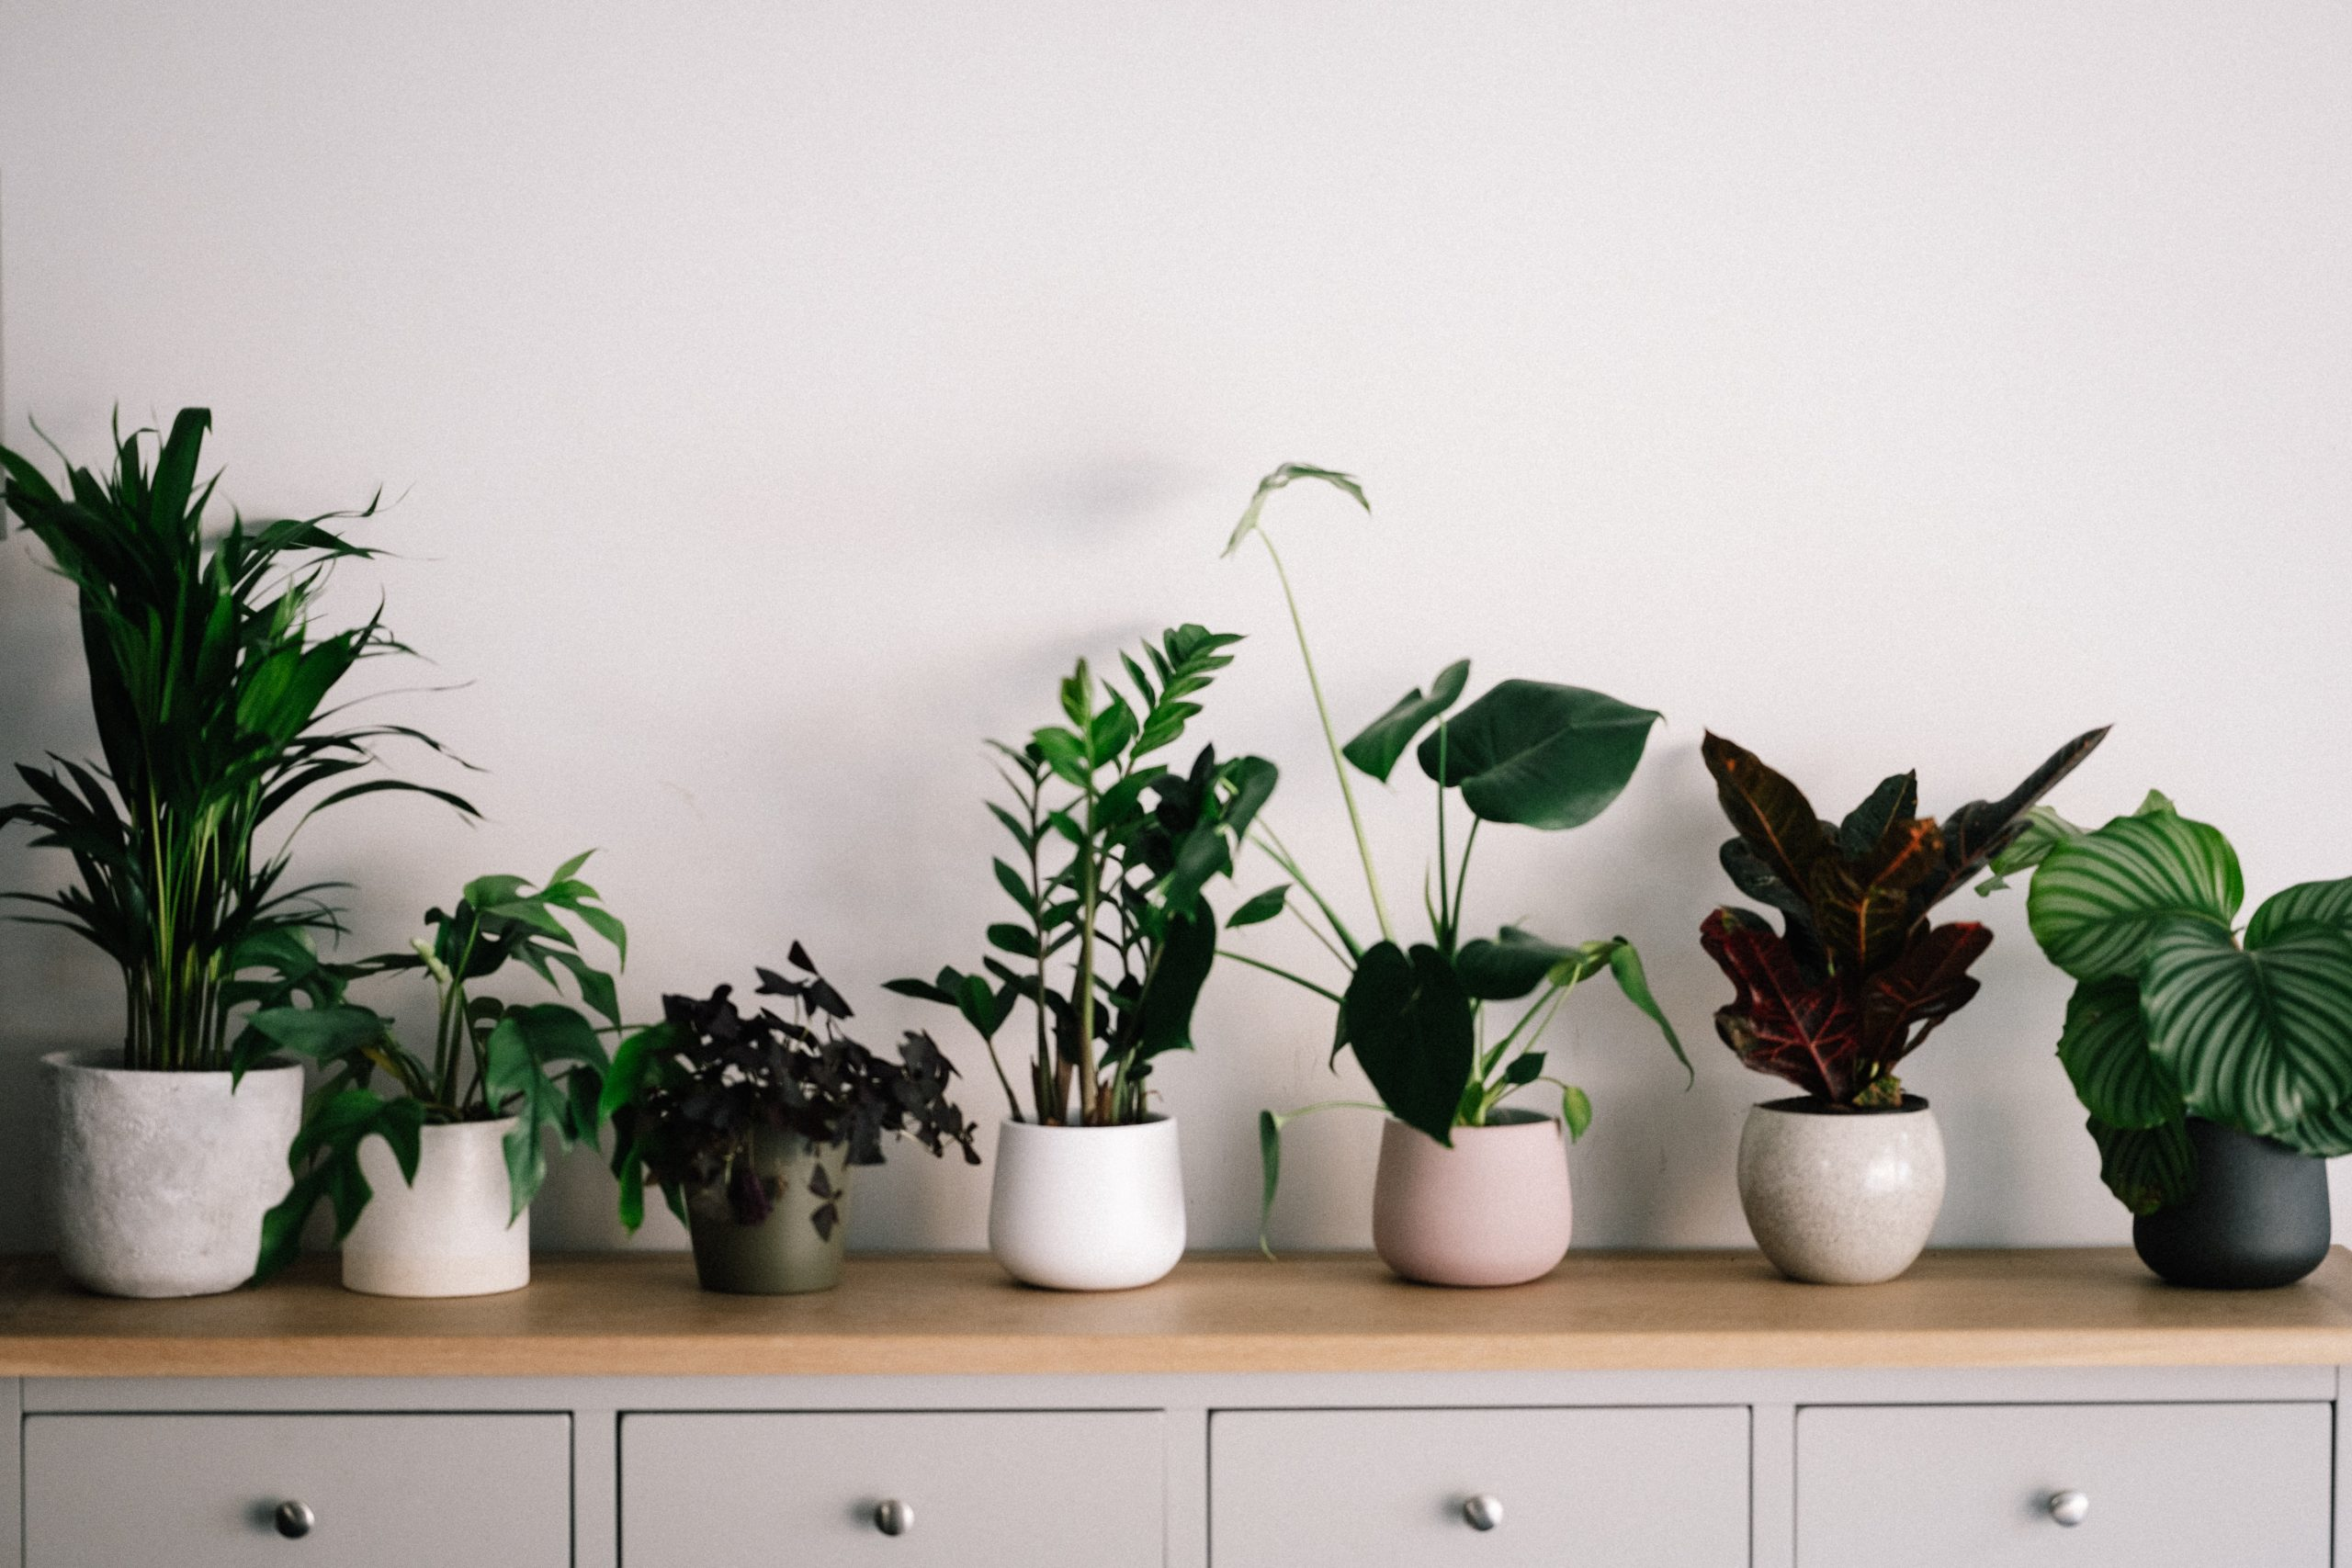 Seven plants in pots on top of a table/cupboard